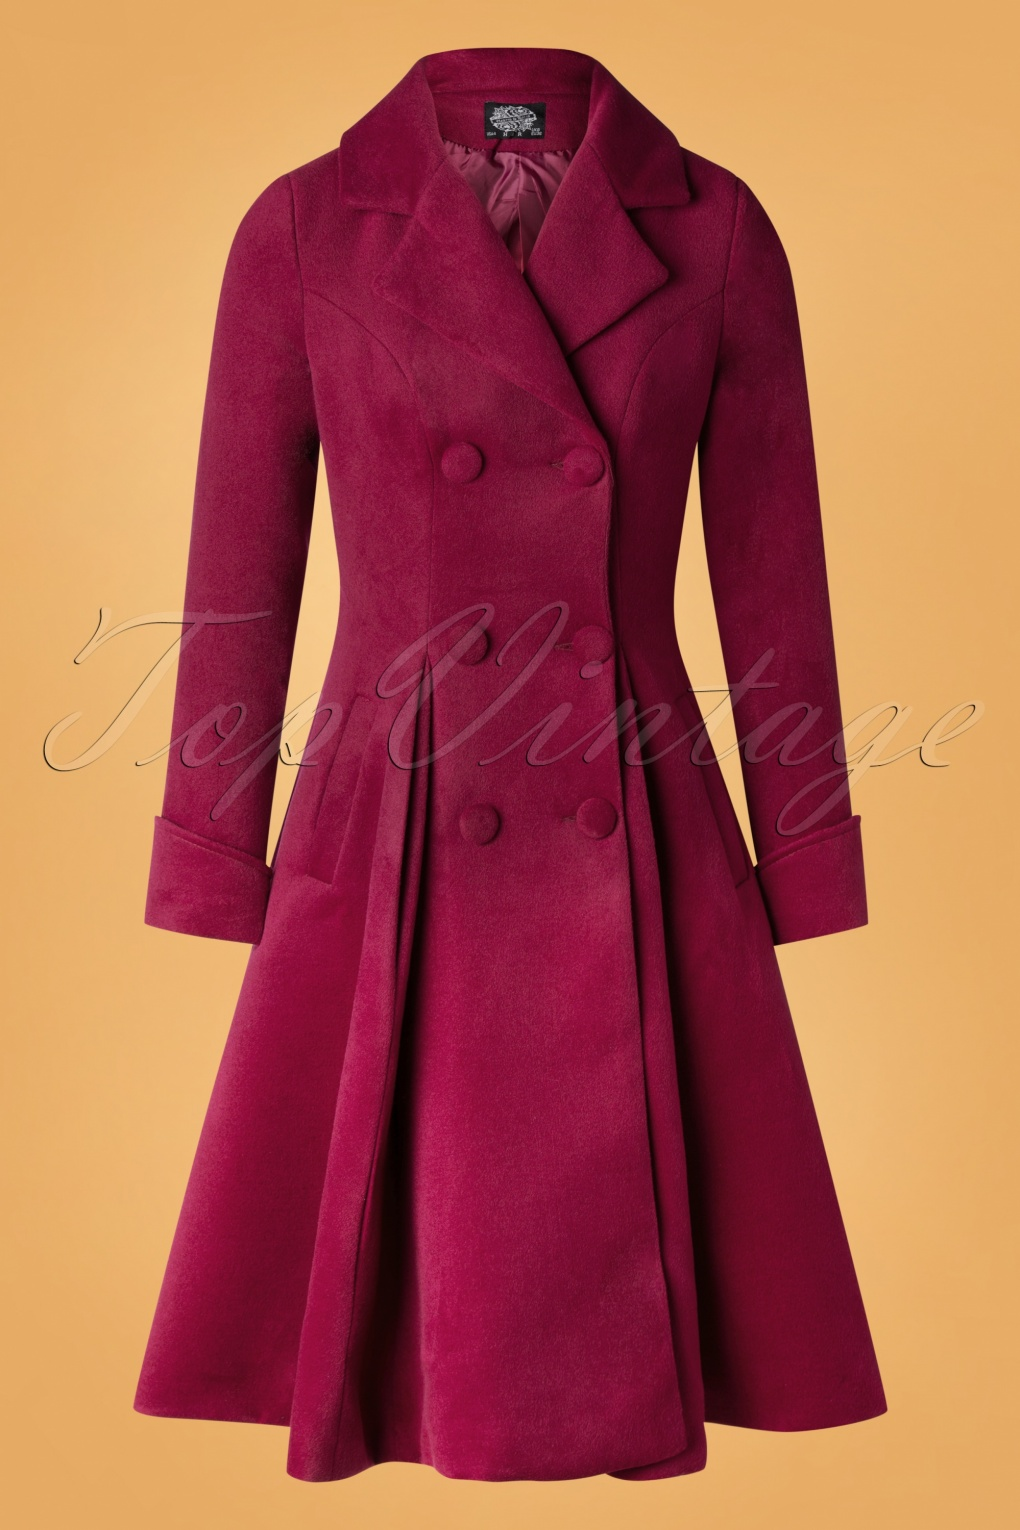 Vintage Coats & Jackets | Retro Coats and Jackets 50s Eleanor Swing Coat in Wine Red £97.90 AT vintagedancer.com